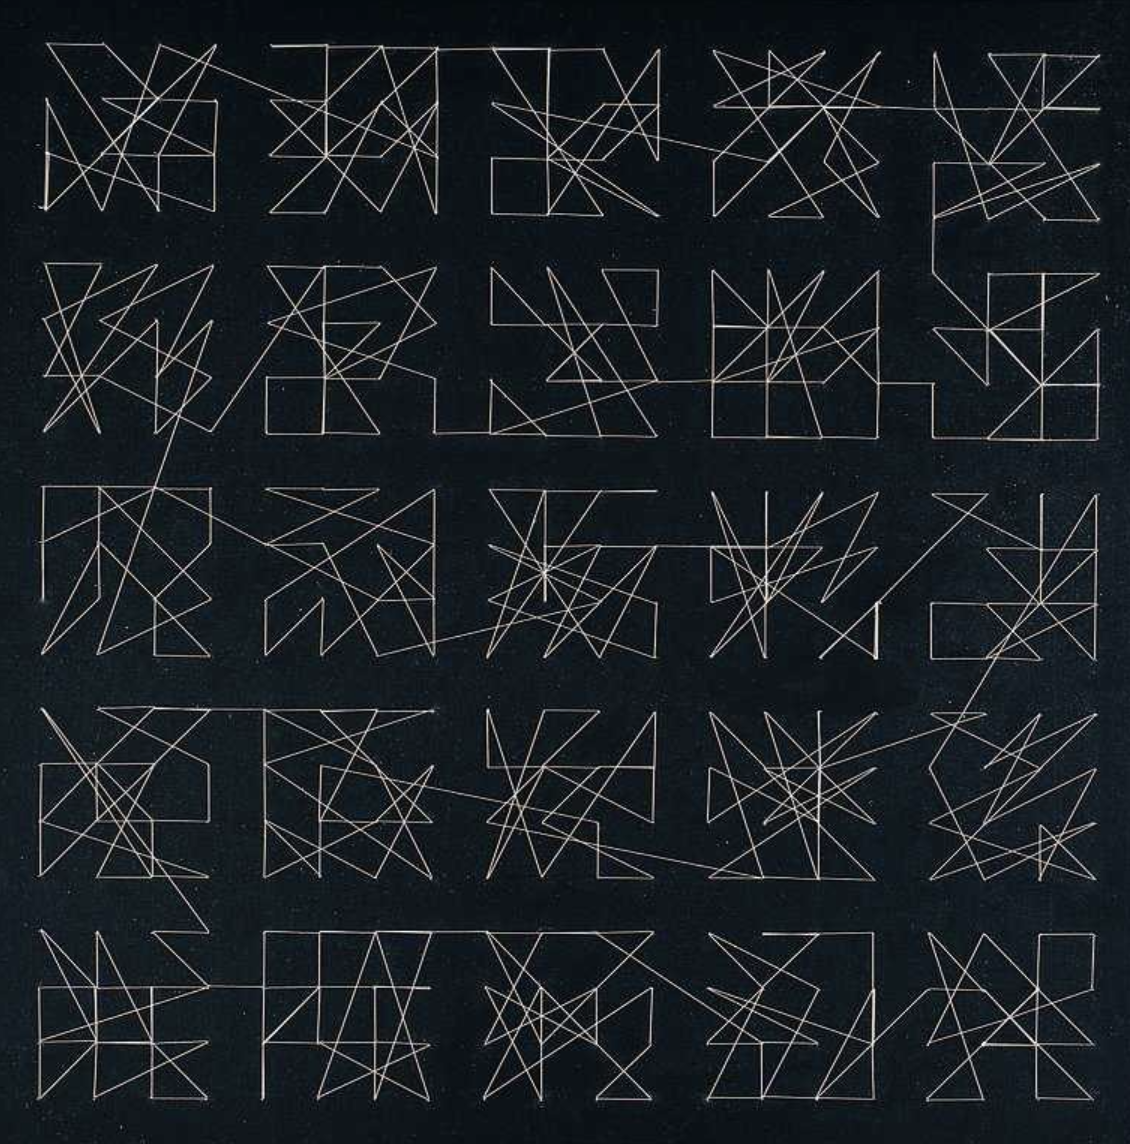 400 aiguilles, traversées par un fil, acrylic on untreated cotton cloth (plywood), cut needles, approx. 40 m thread (knotted once) diptych, 1/2, 1989/2004, 84 x 84 cm, Edition Axel Rohlfs